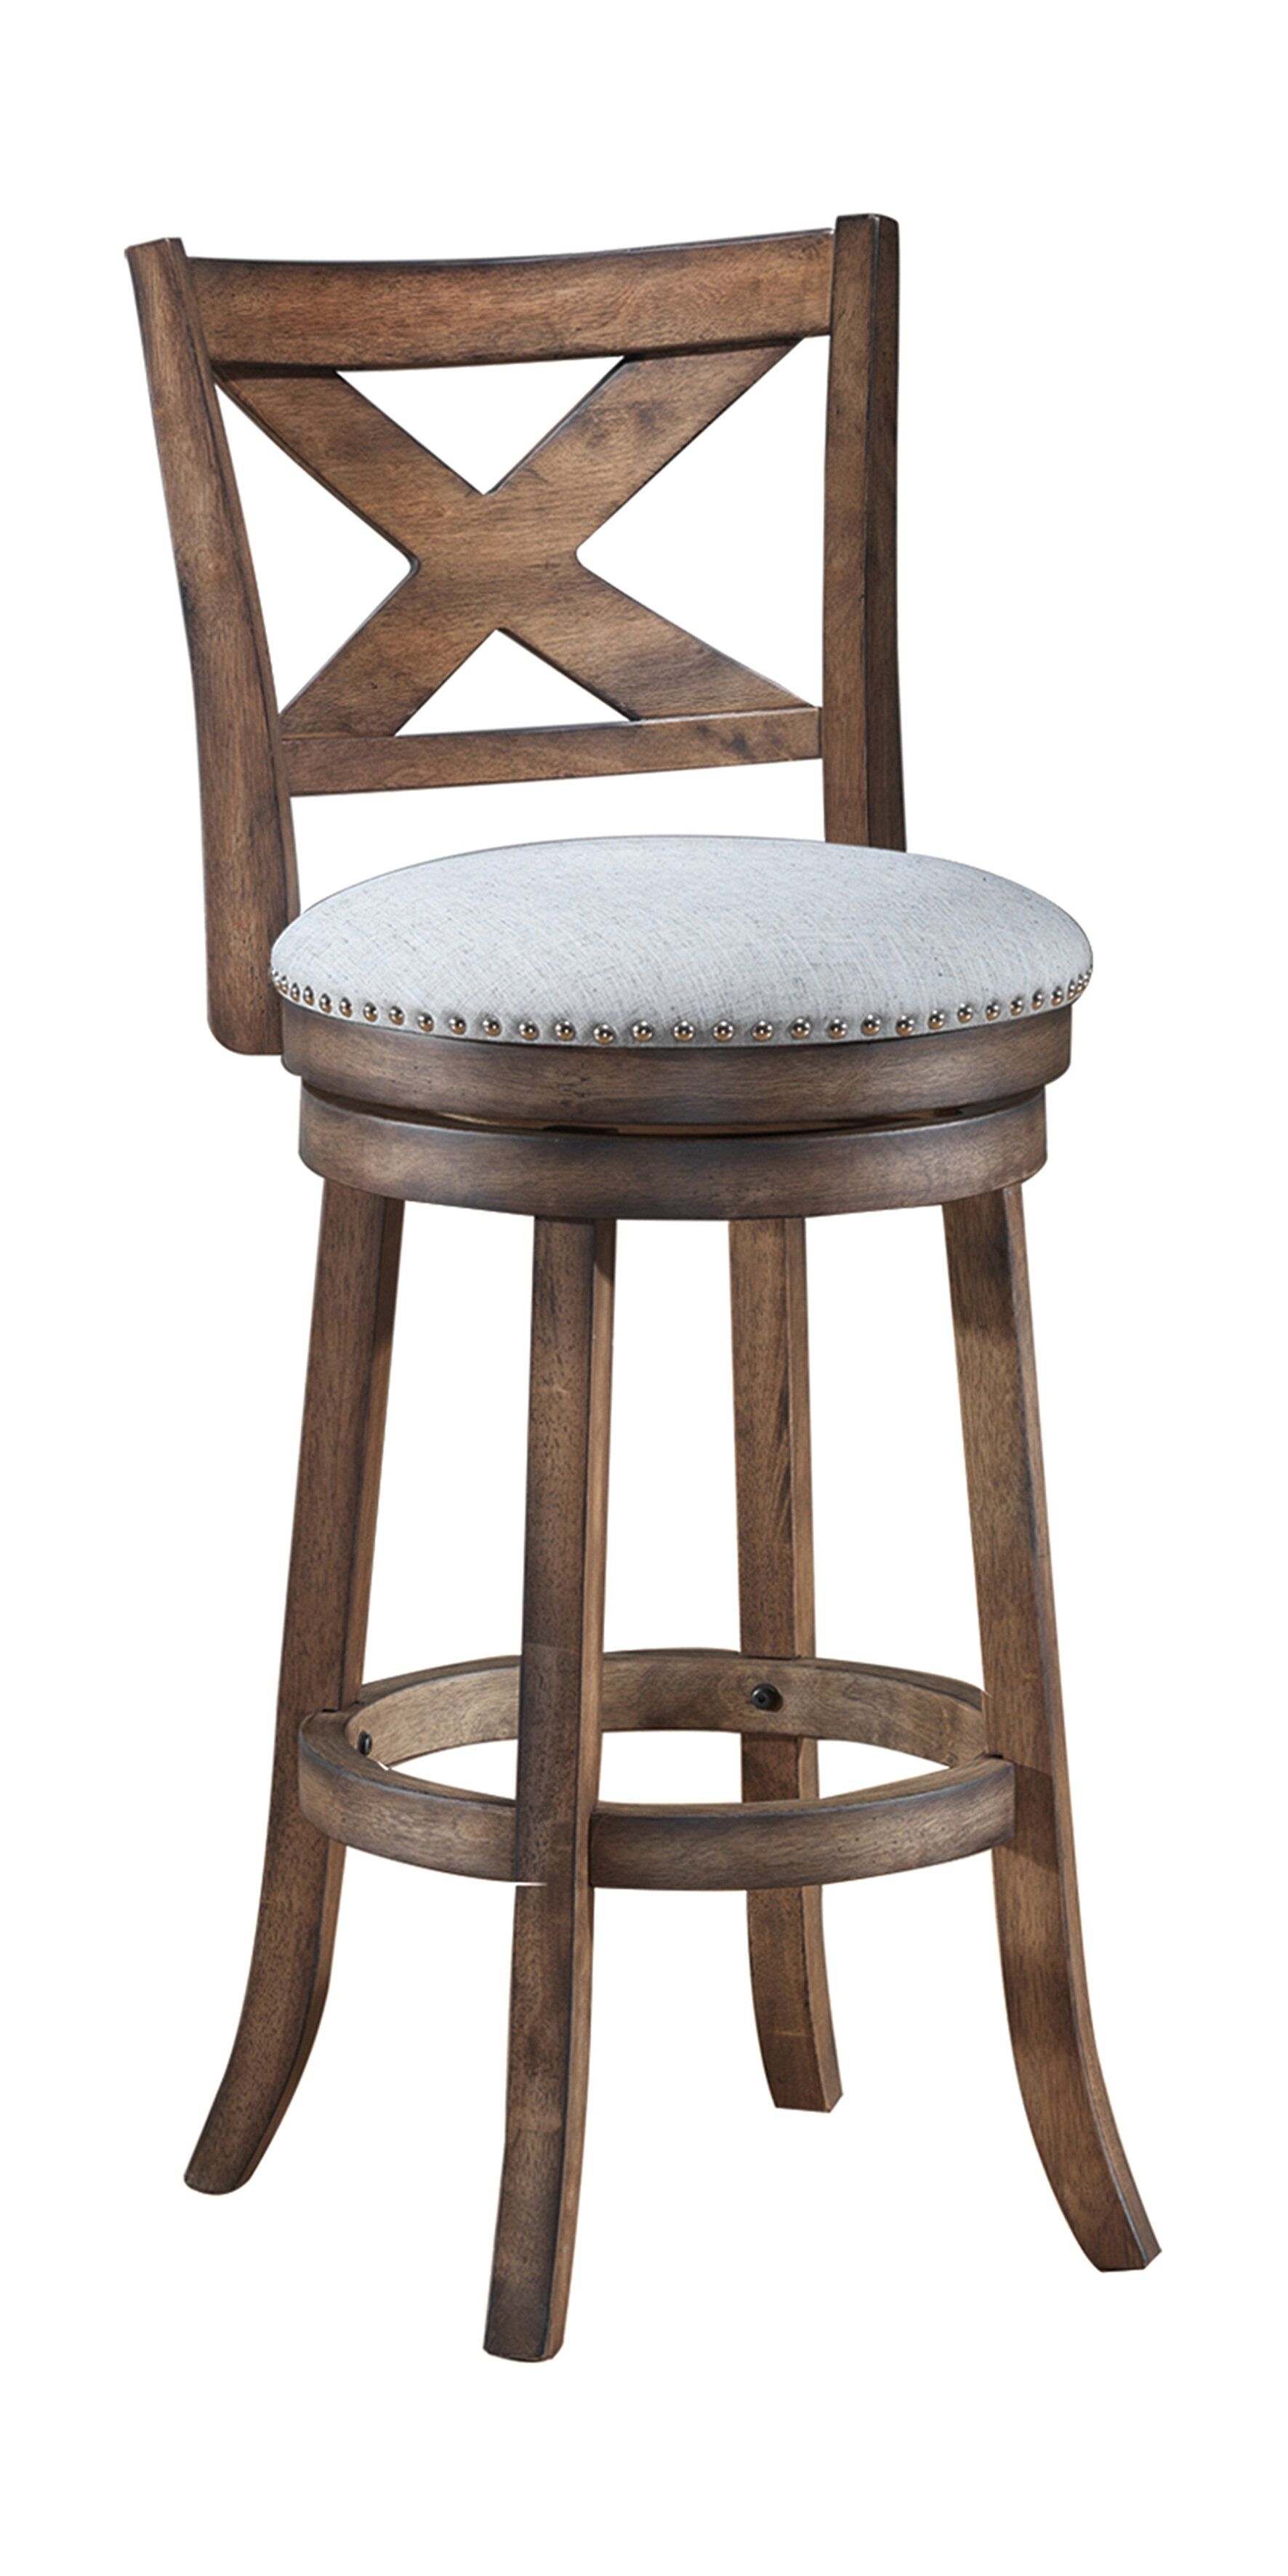 Gracie Oaks Mackin Wooden Bar Counter Swivel Stool